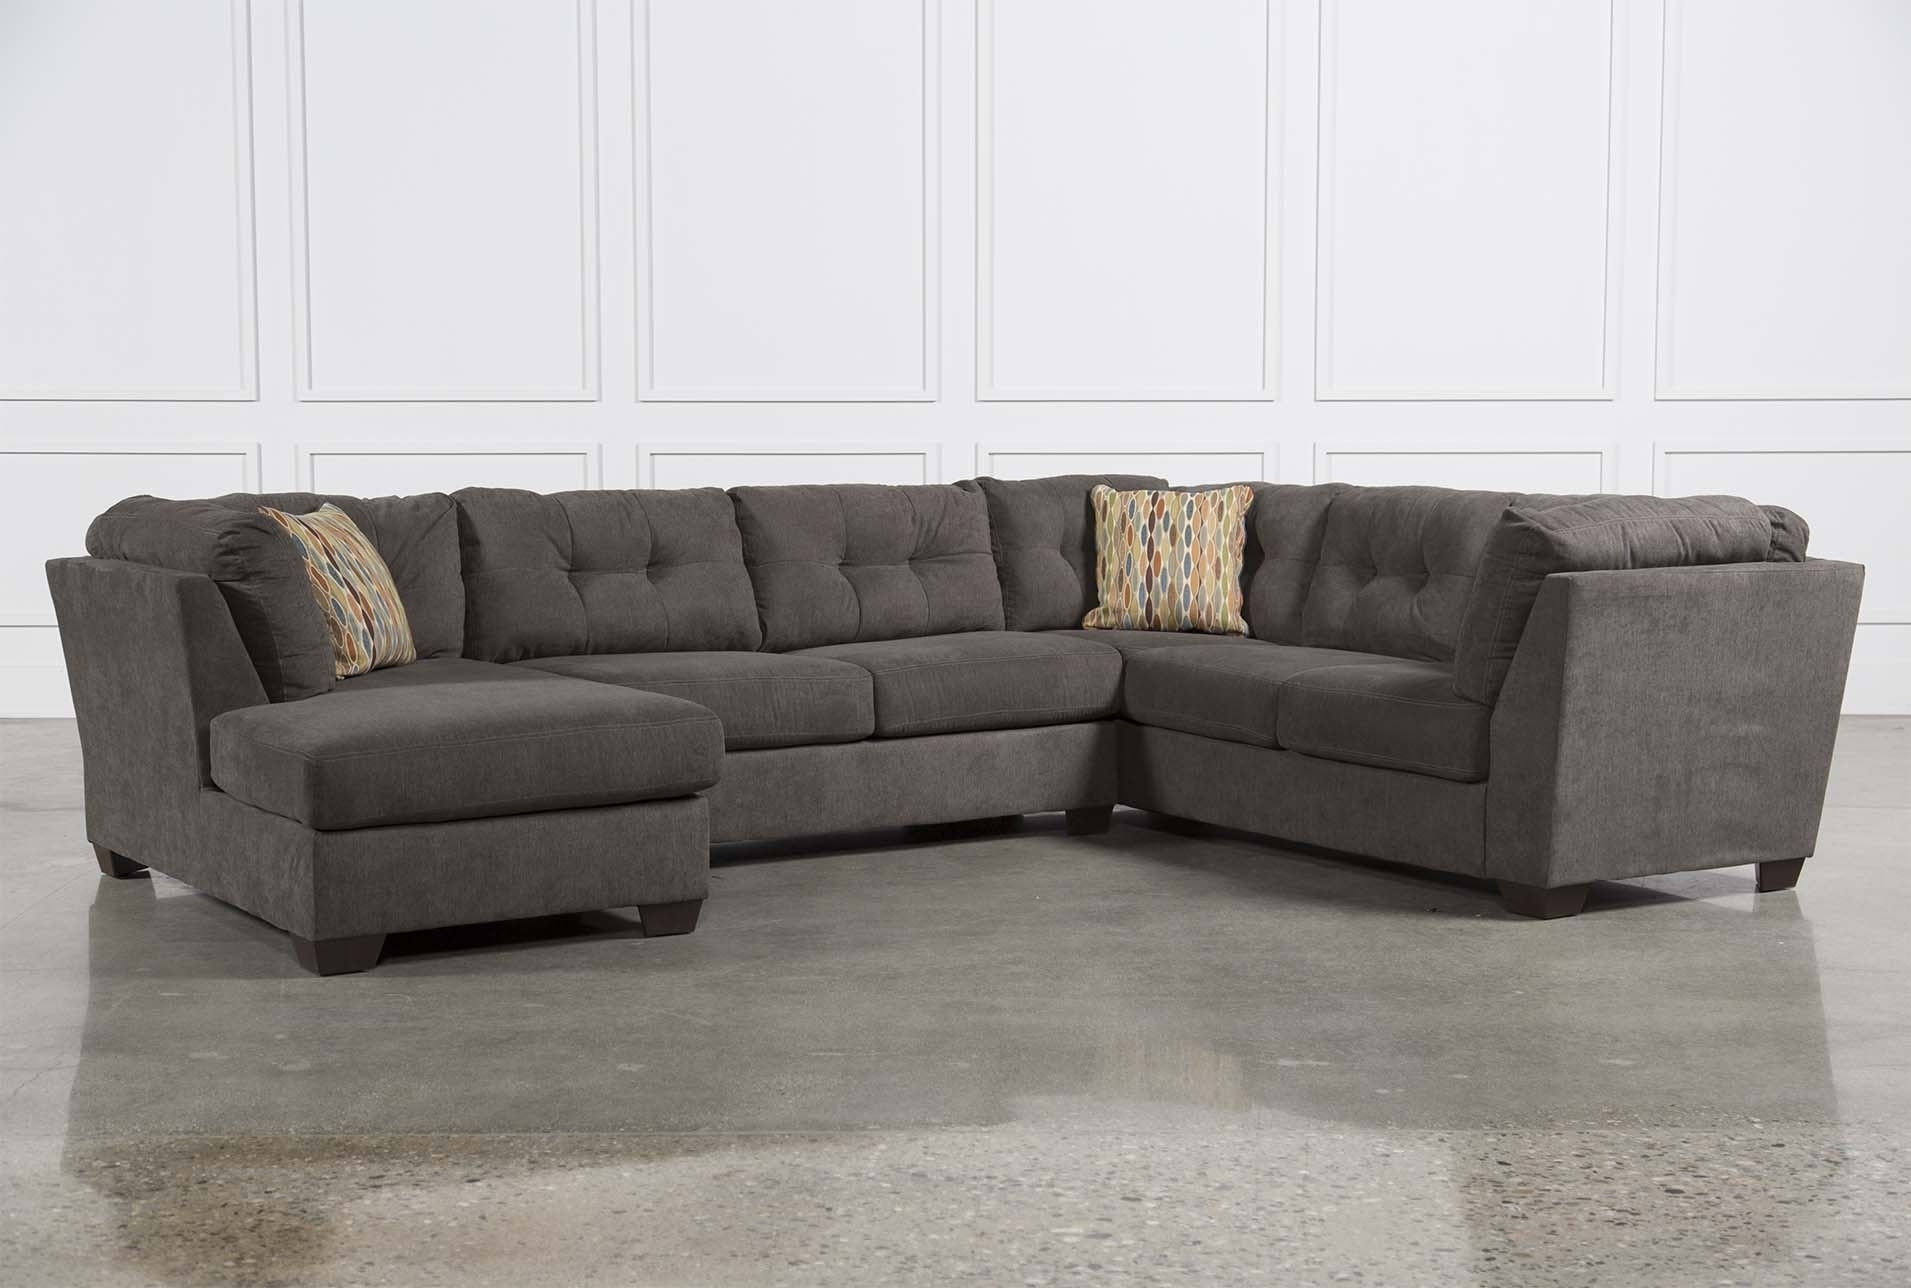 Delta City Steel 3 Piece Sectional W/laf Chaise – Signature | New With Norfolk Chocolate 6 Piece Sectionals With Laf Chaise (Image 10 of 25)